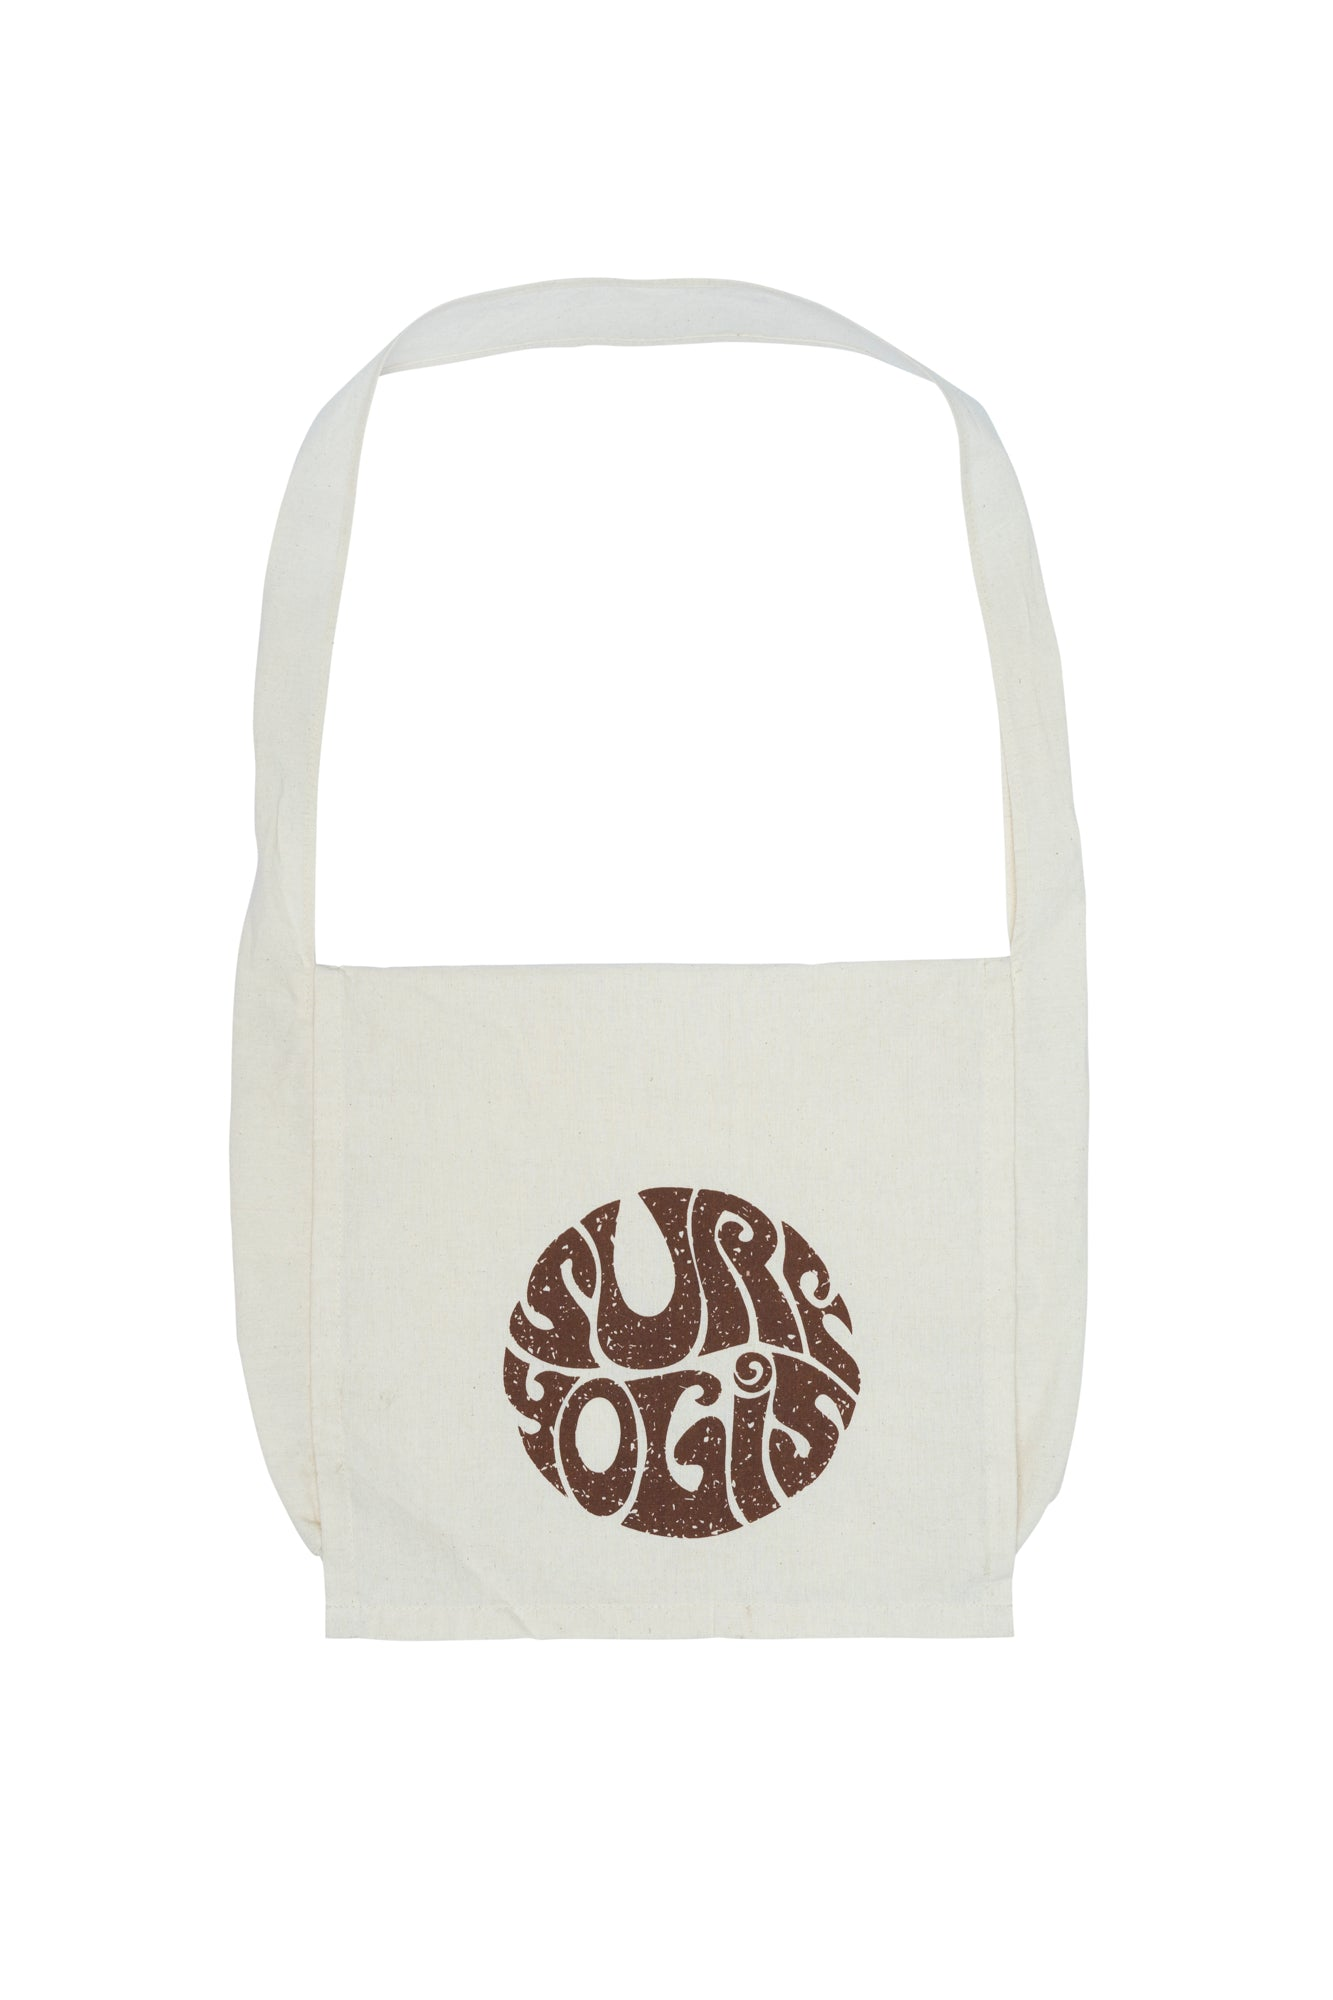 Surfyogis Yoga Bag